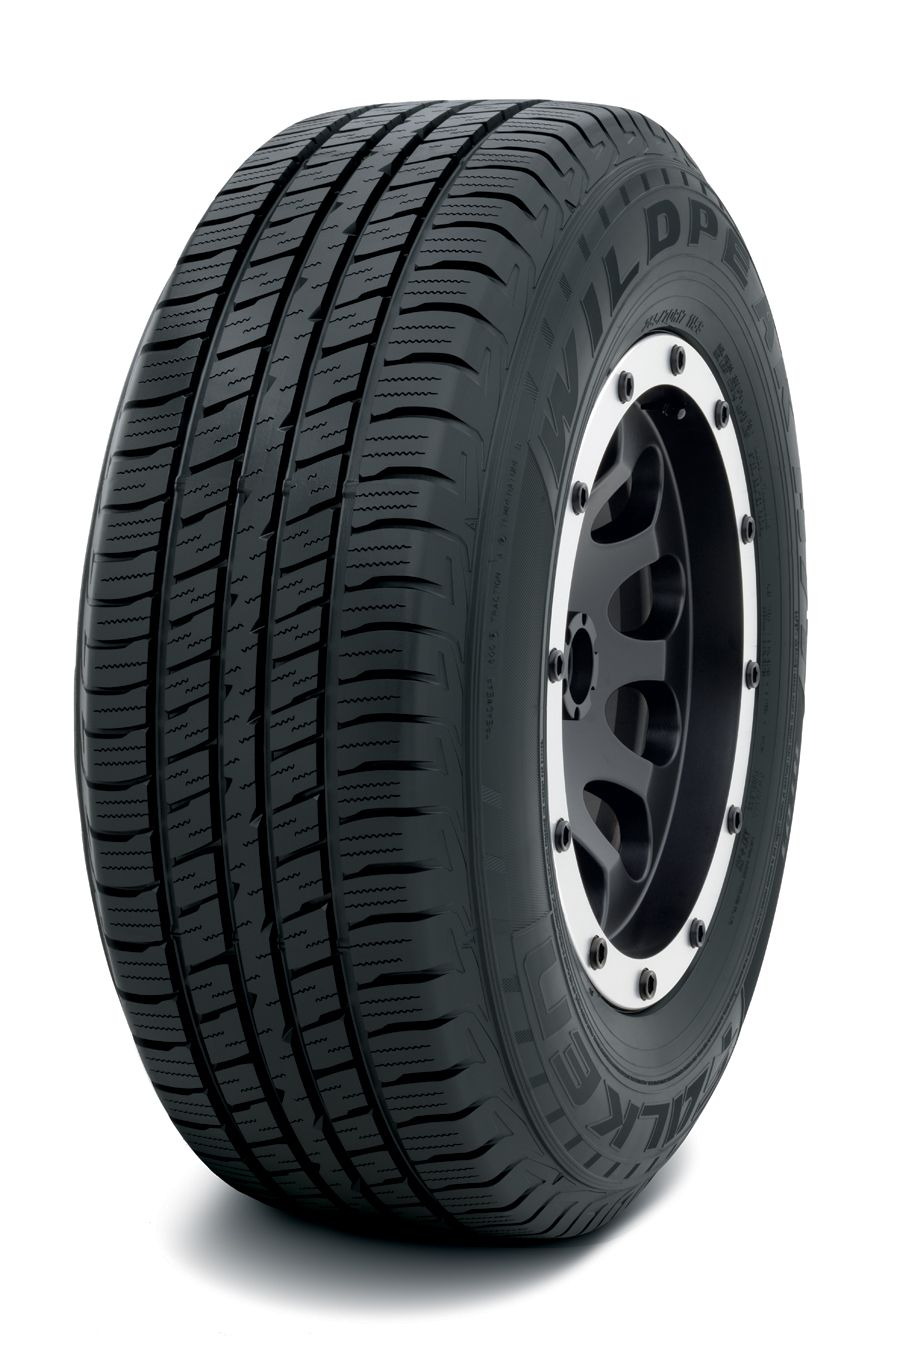 New Falken WildPeak goes on sale March 1